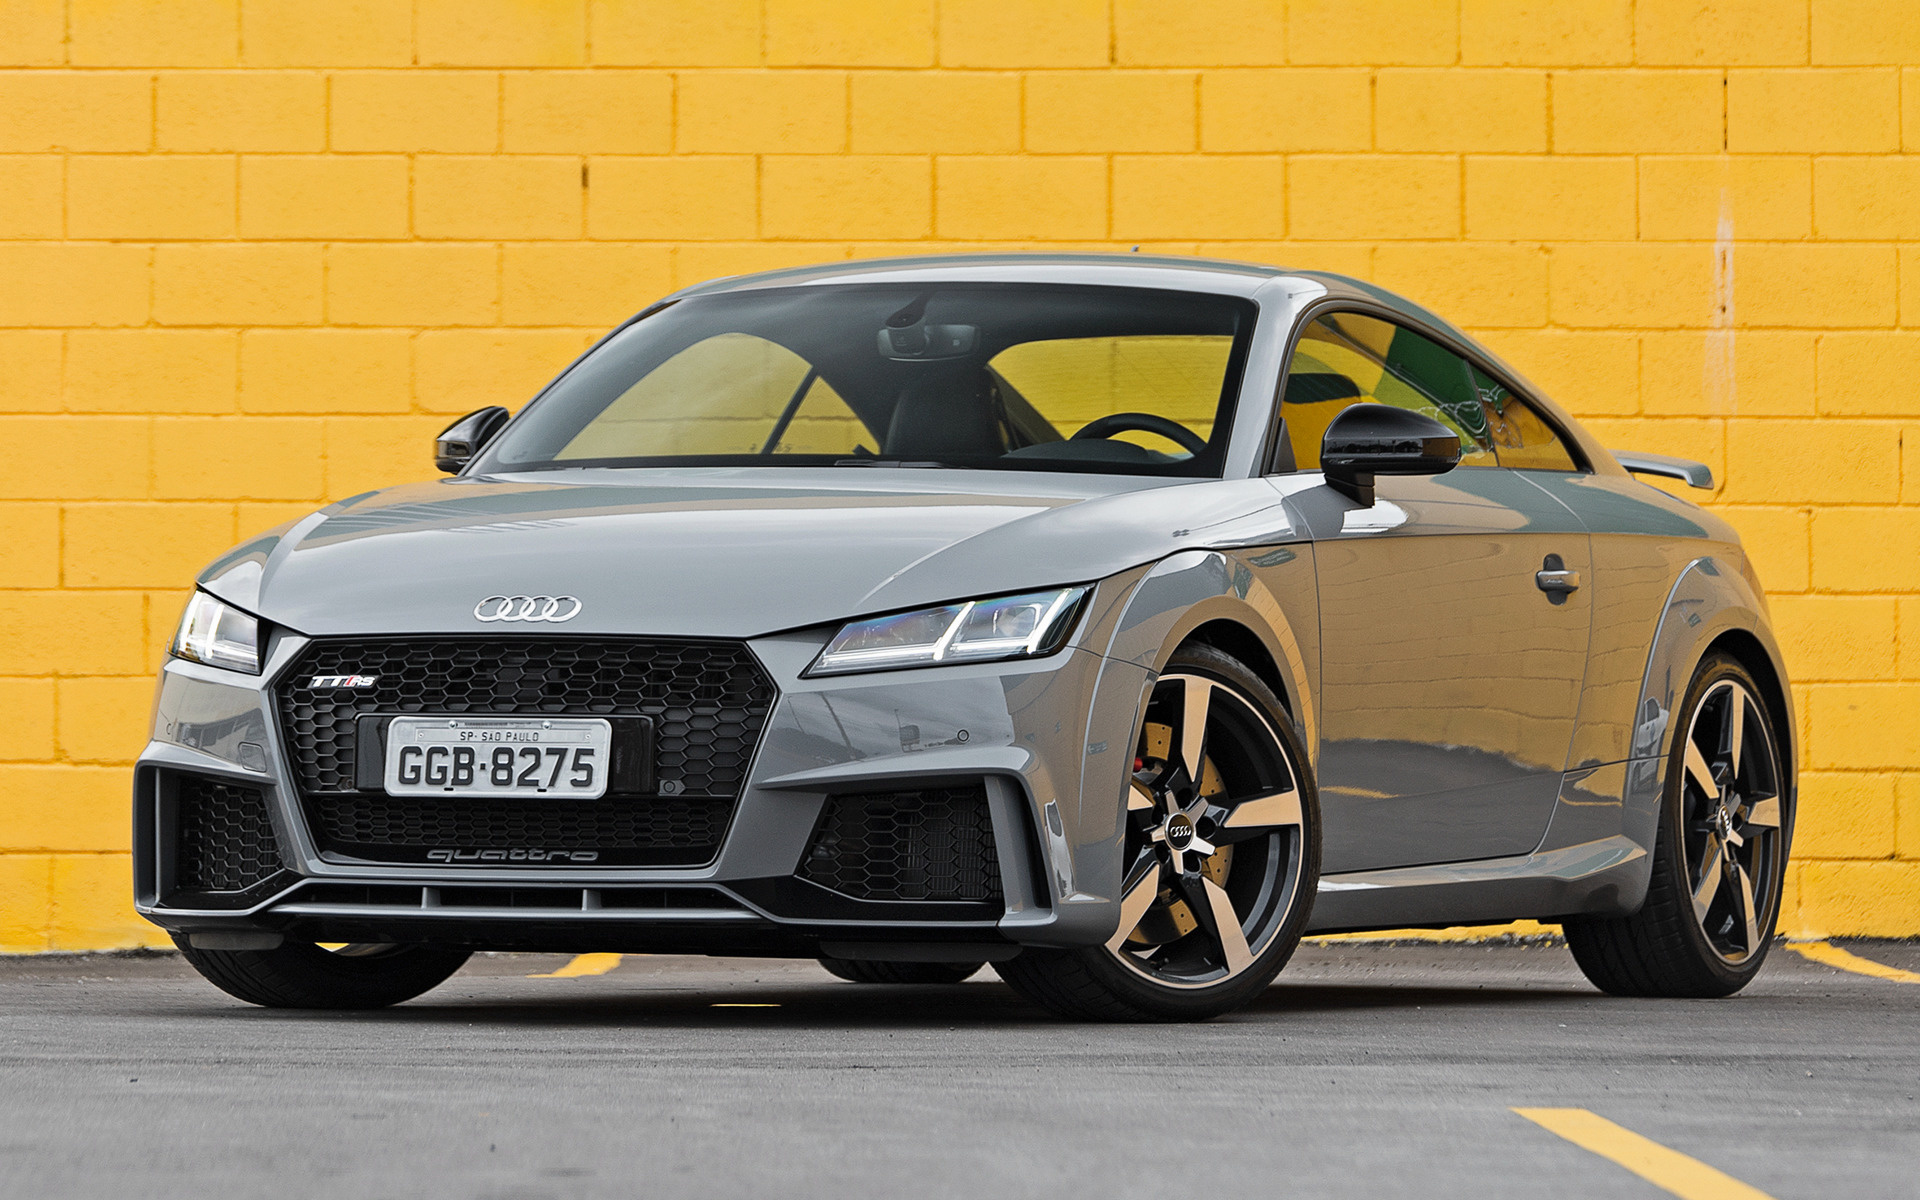 Audi TT RS Coupe (2018) BR Wallpapers and HD Images - Car Pixel